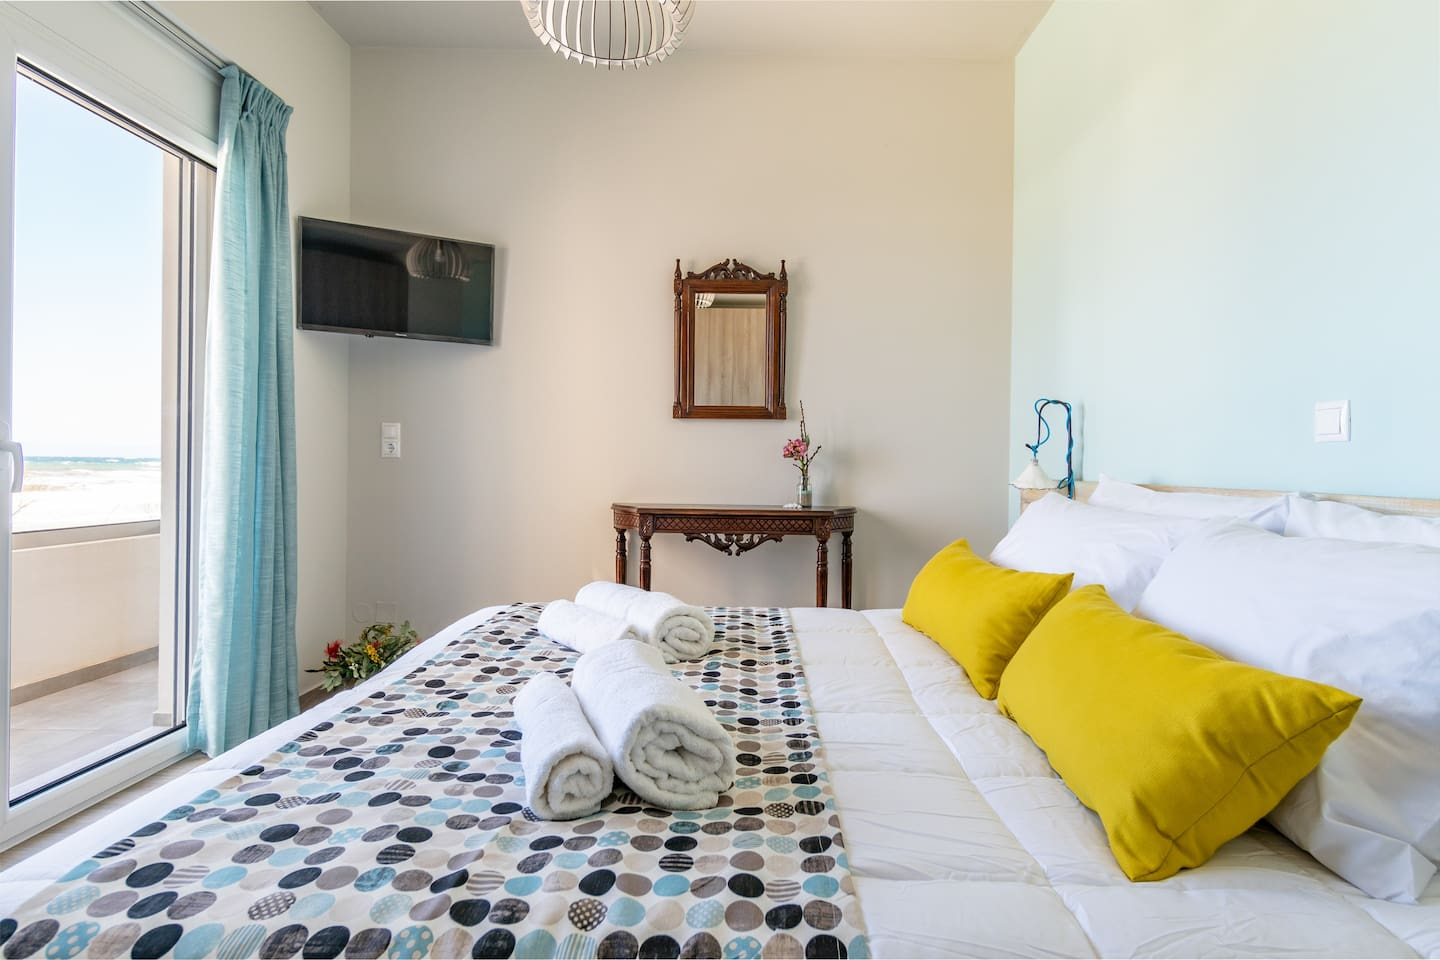 Bedroom with sea view and COCOMAT bed and mattress